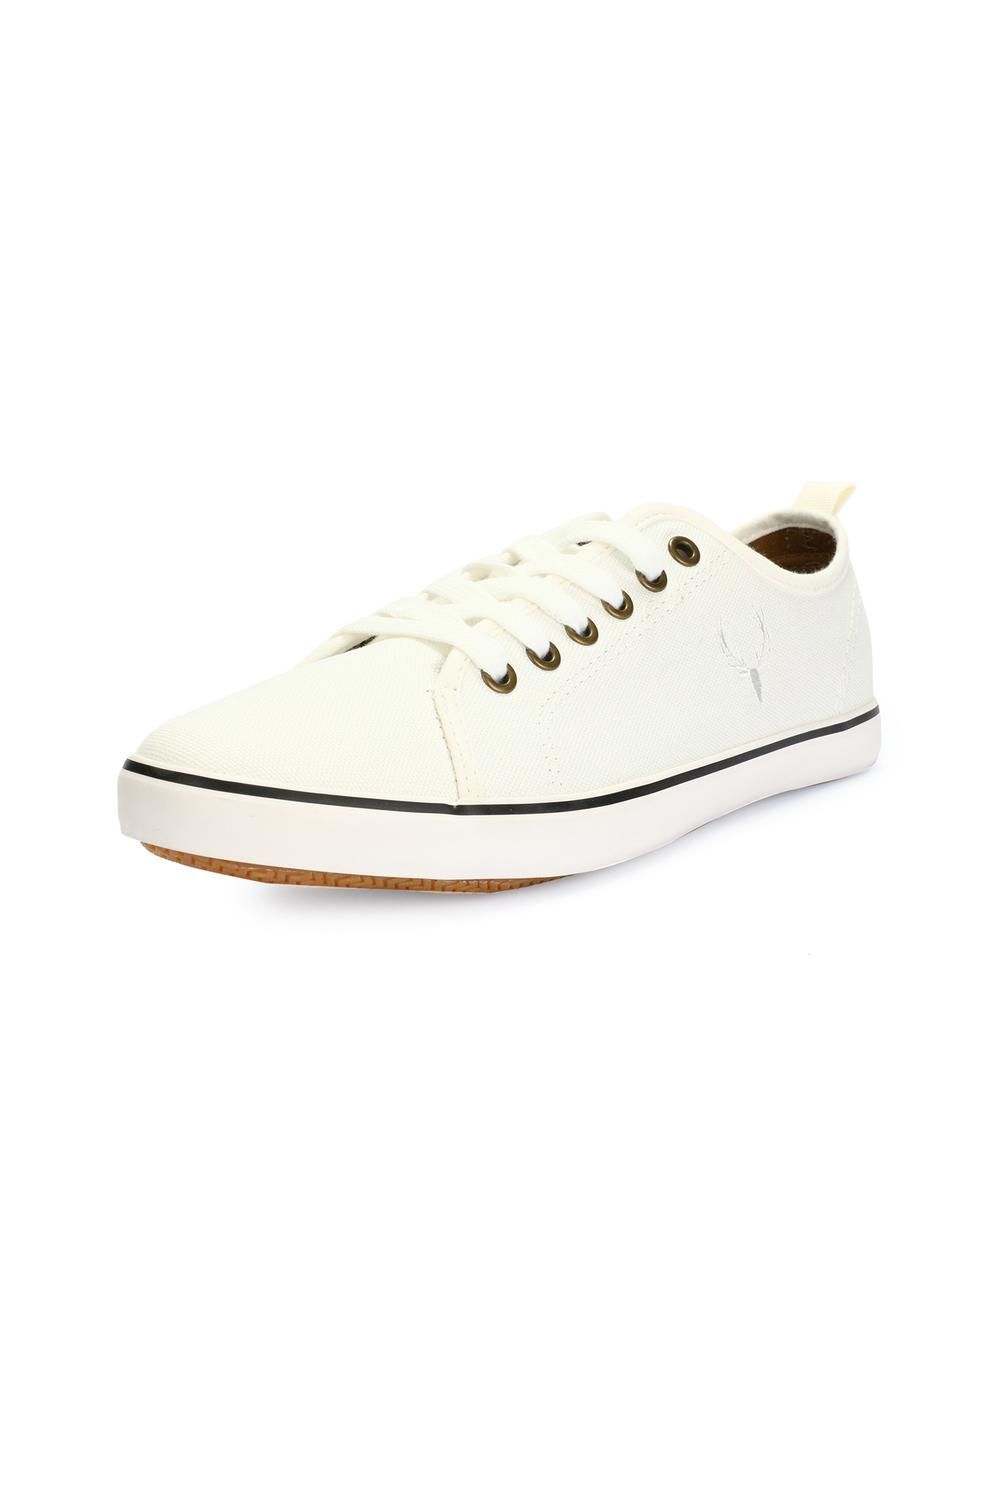 Allen Solly White Casual Shoes for Men